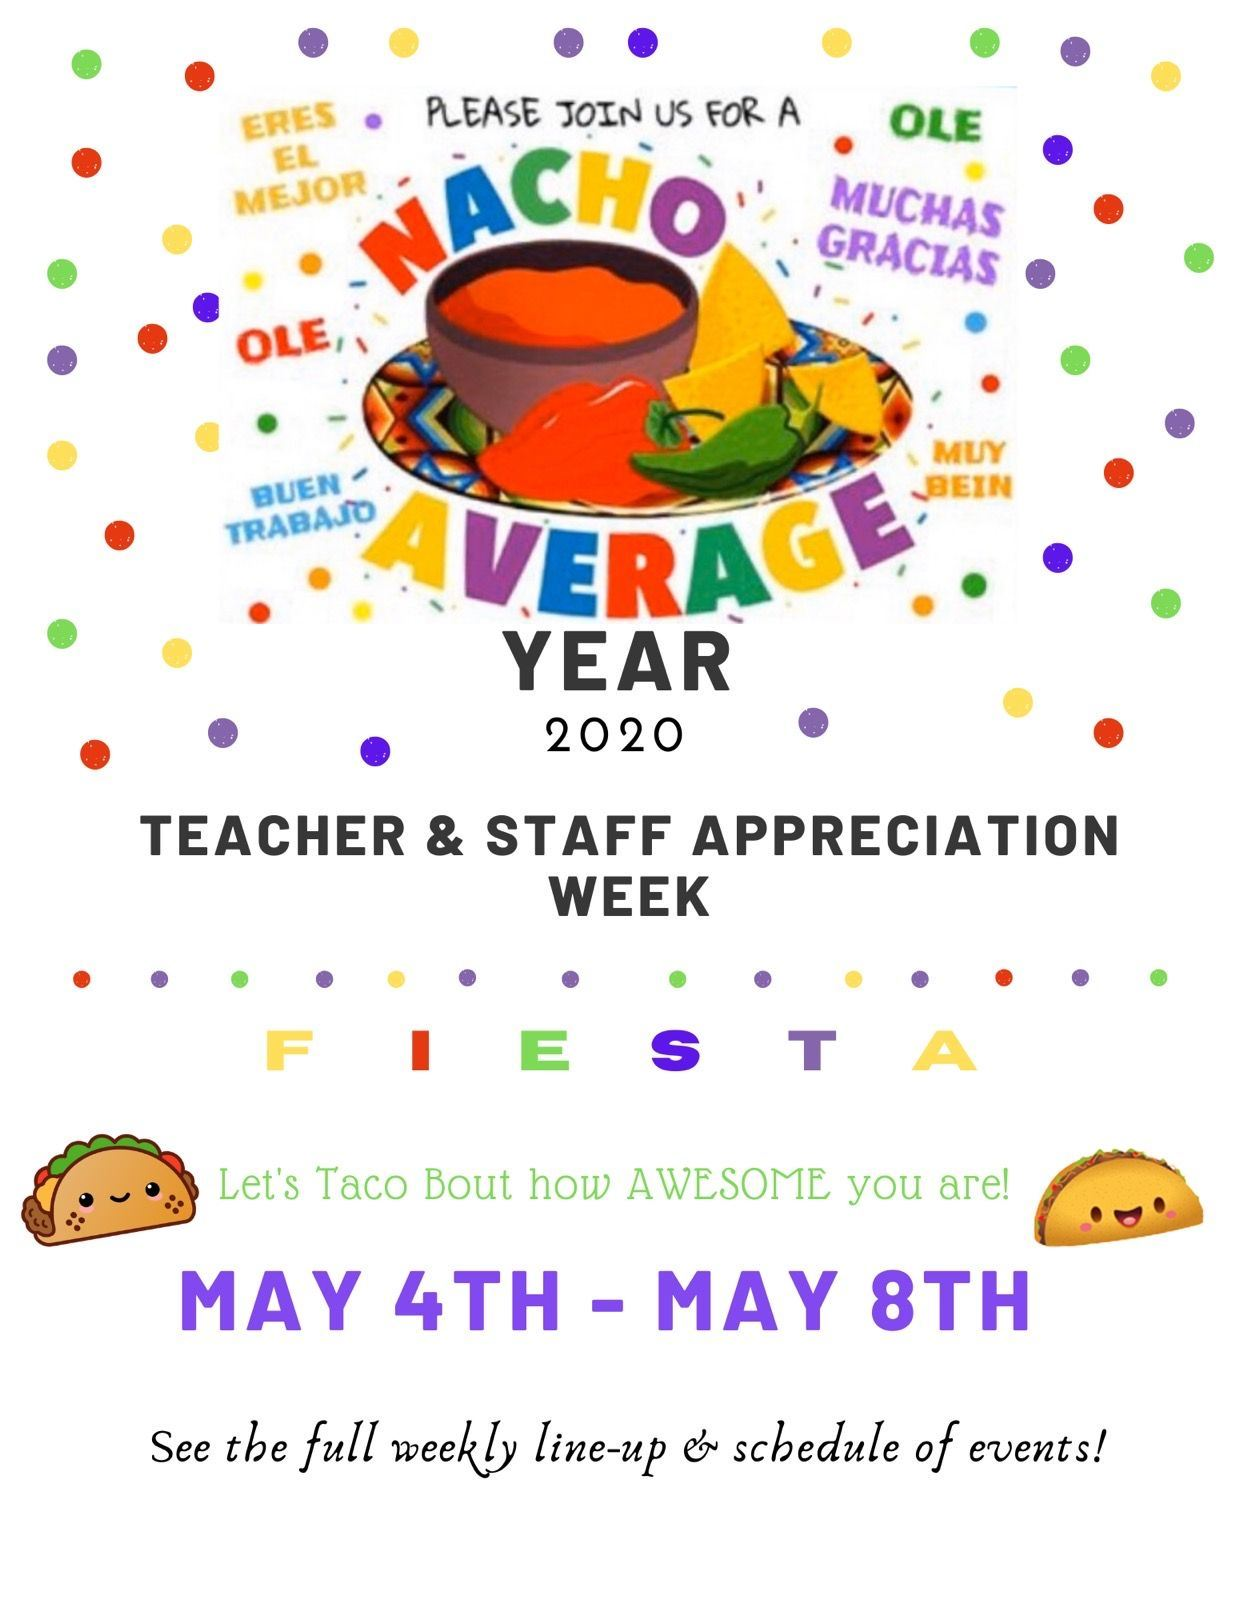 Teacher & Staff Appreciation Week